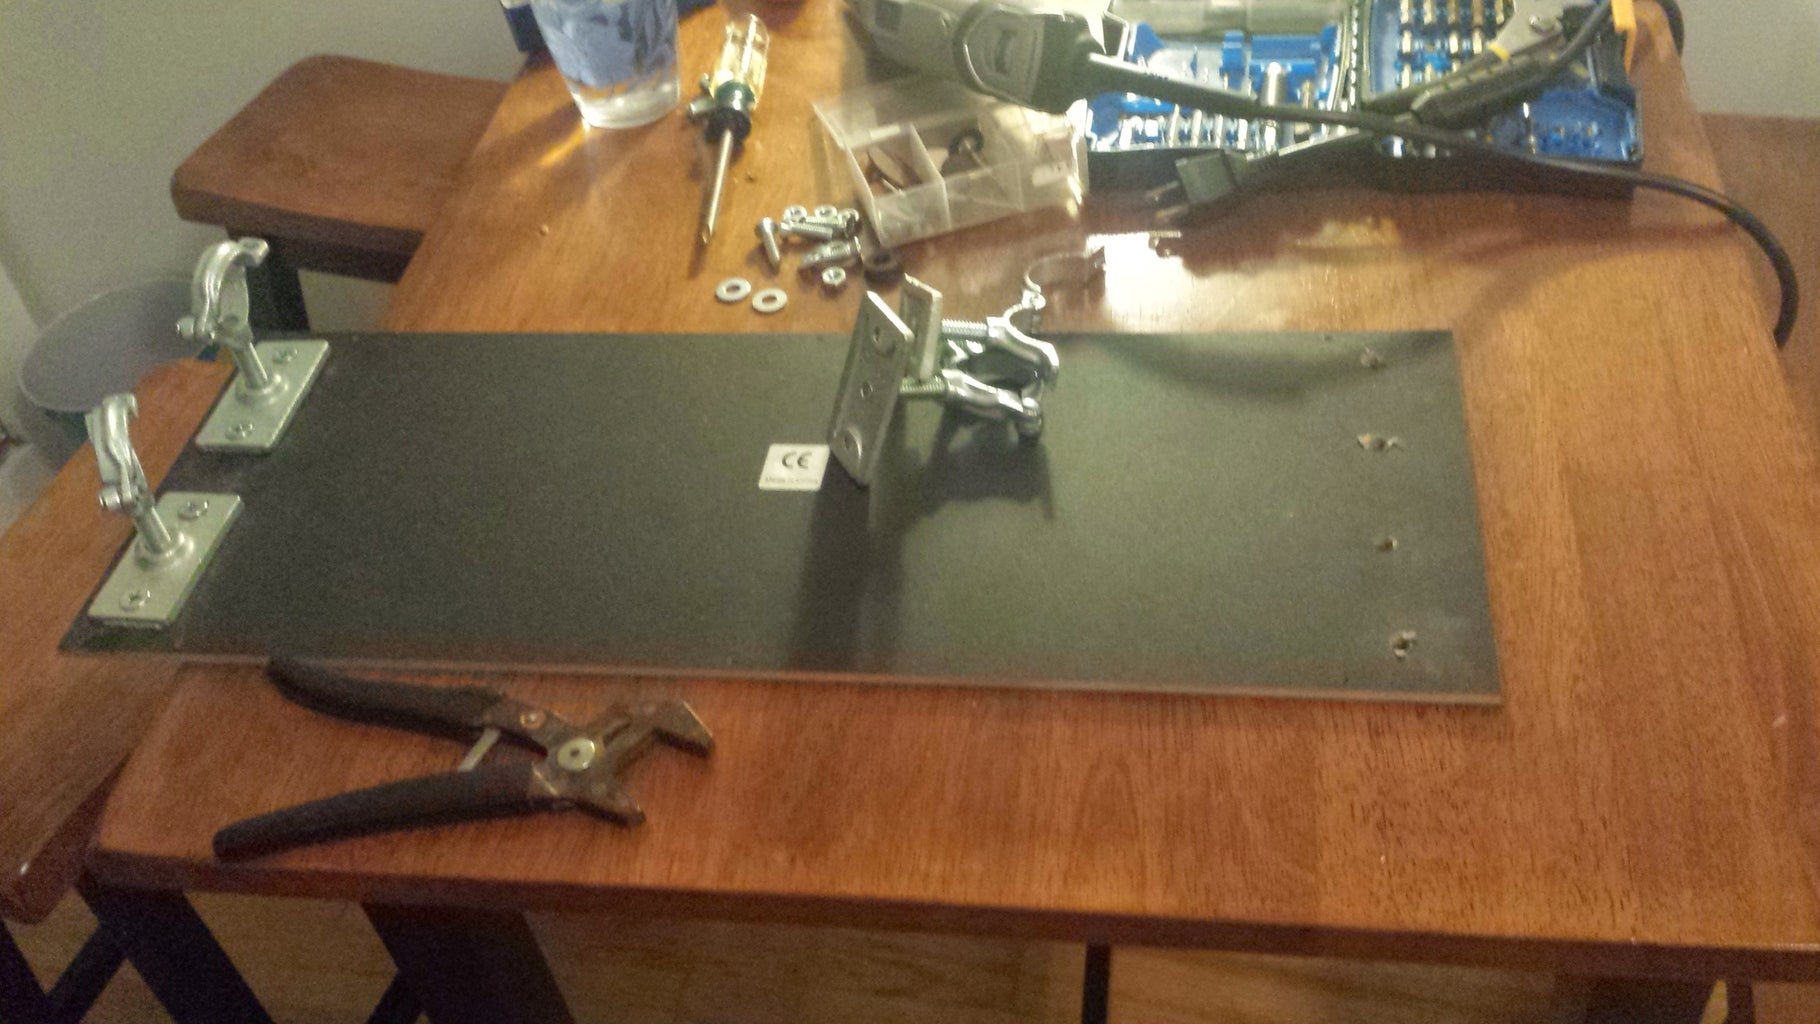 Step 3: Attach Ceiling Flange to Controller Bottom